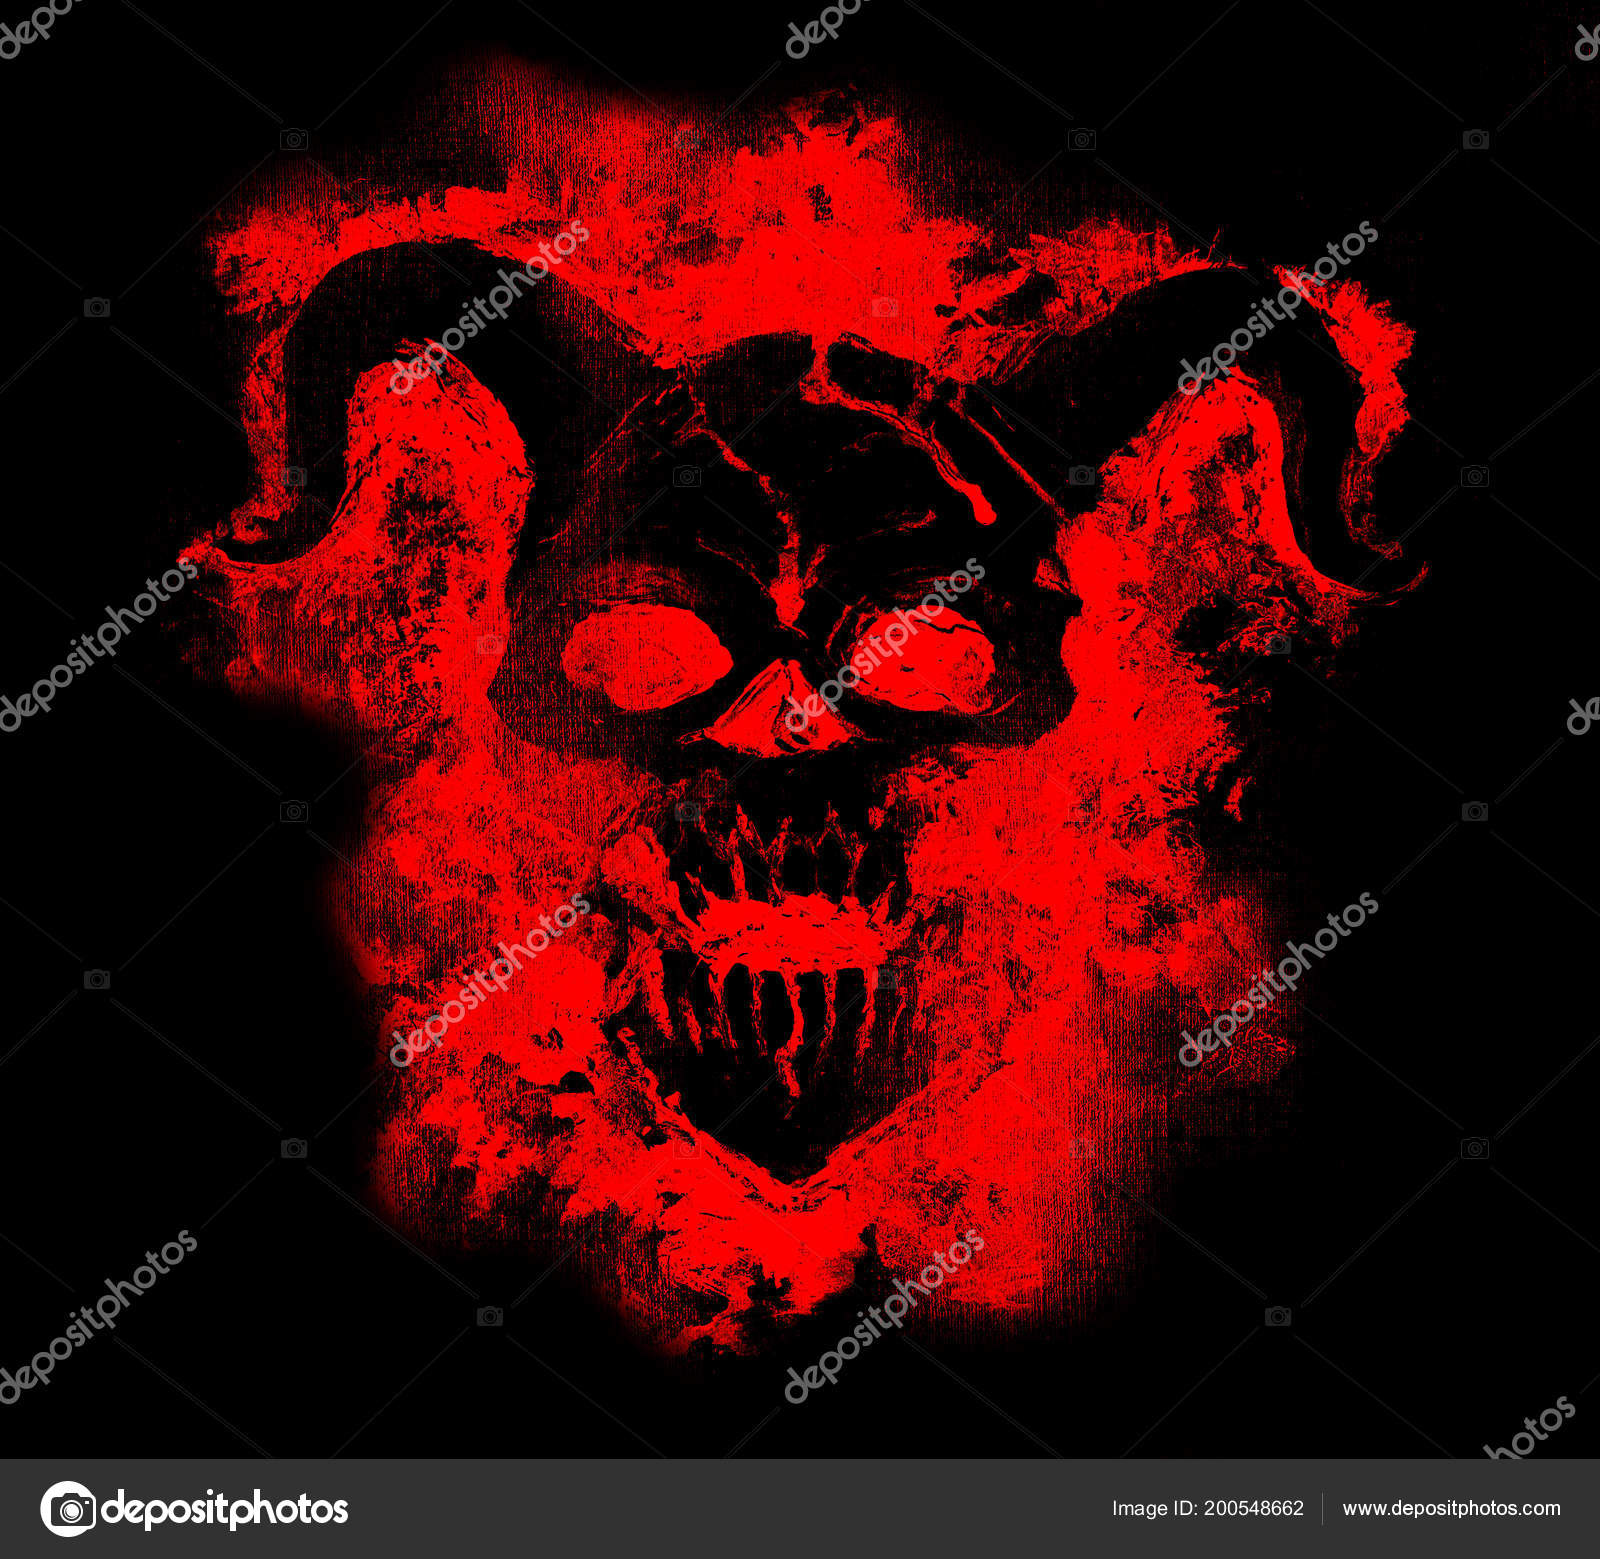 Black Demon Face In Red Silhouette Death Symbol, Black Magic